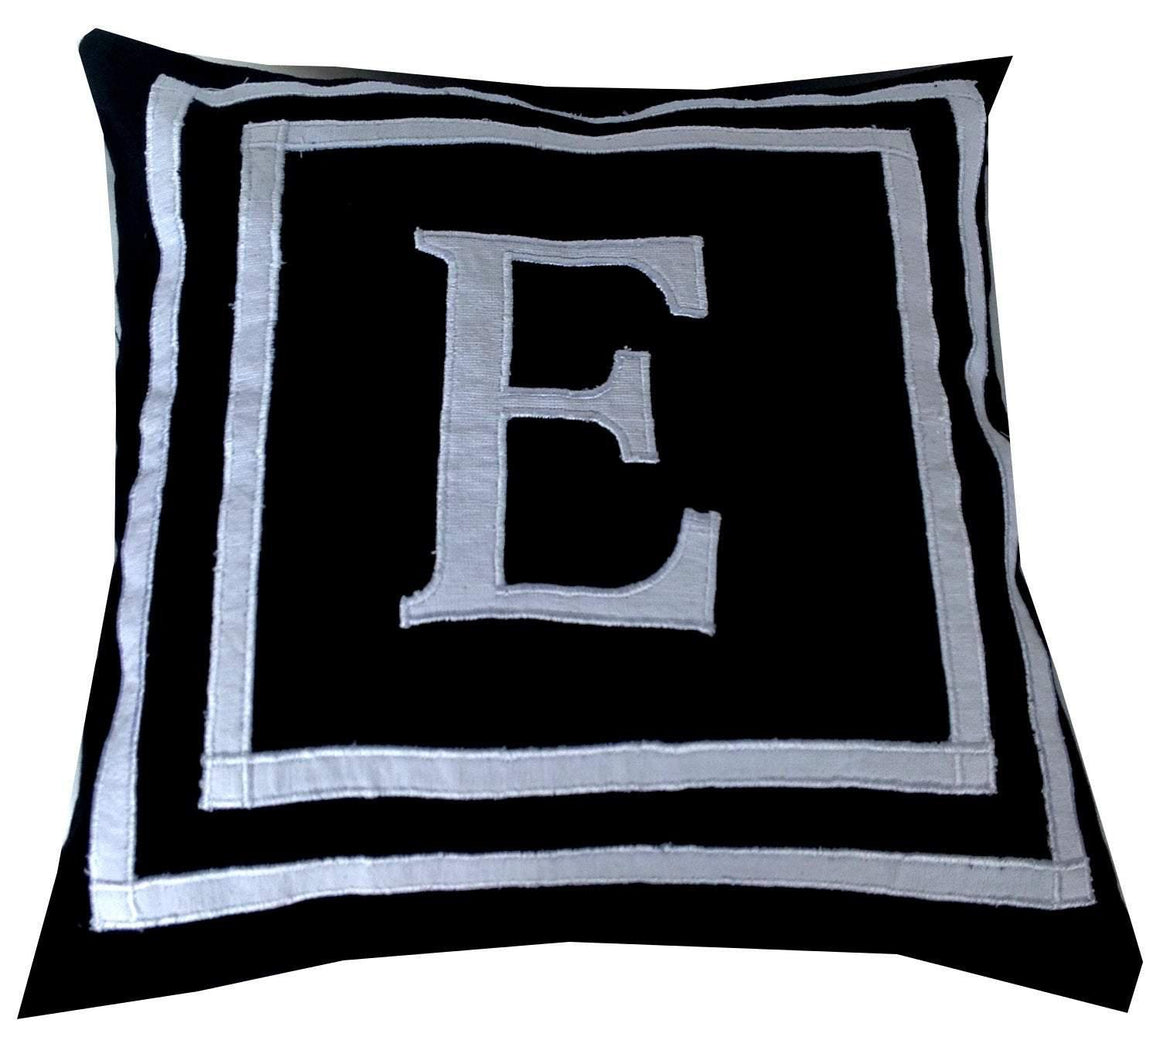 30% OFF Letter Pillows, Monogram Pillows, Black Throw Pillow Covers, Monogram covers, Dorm Pillow Cover - Snazzy Living